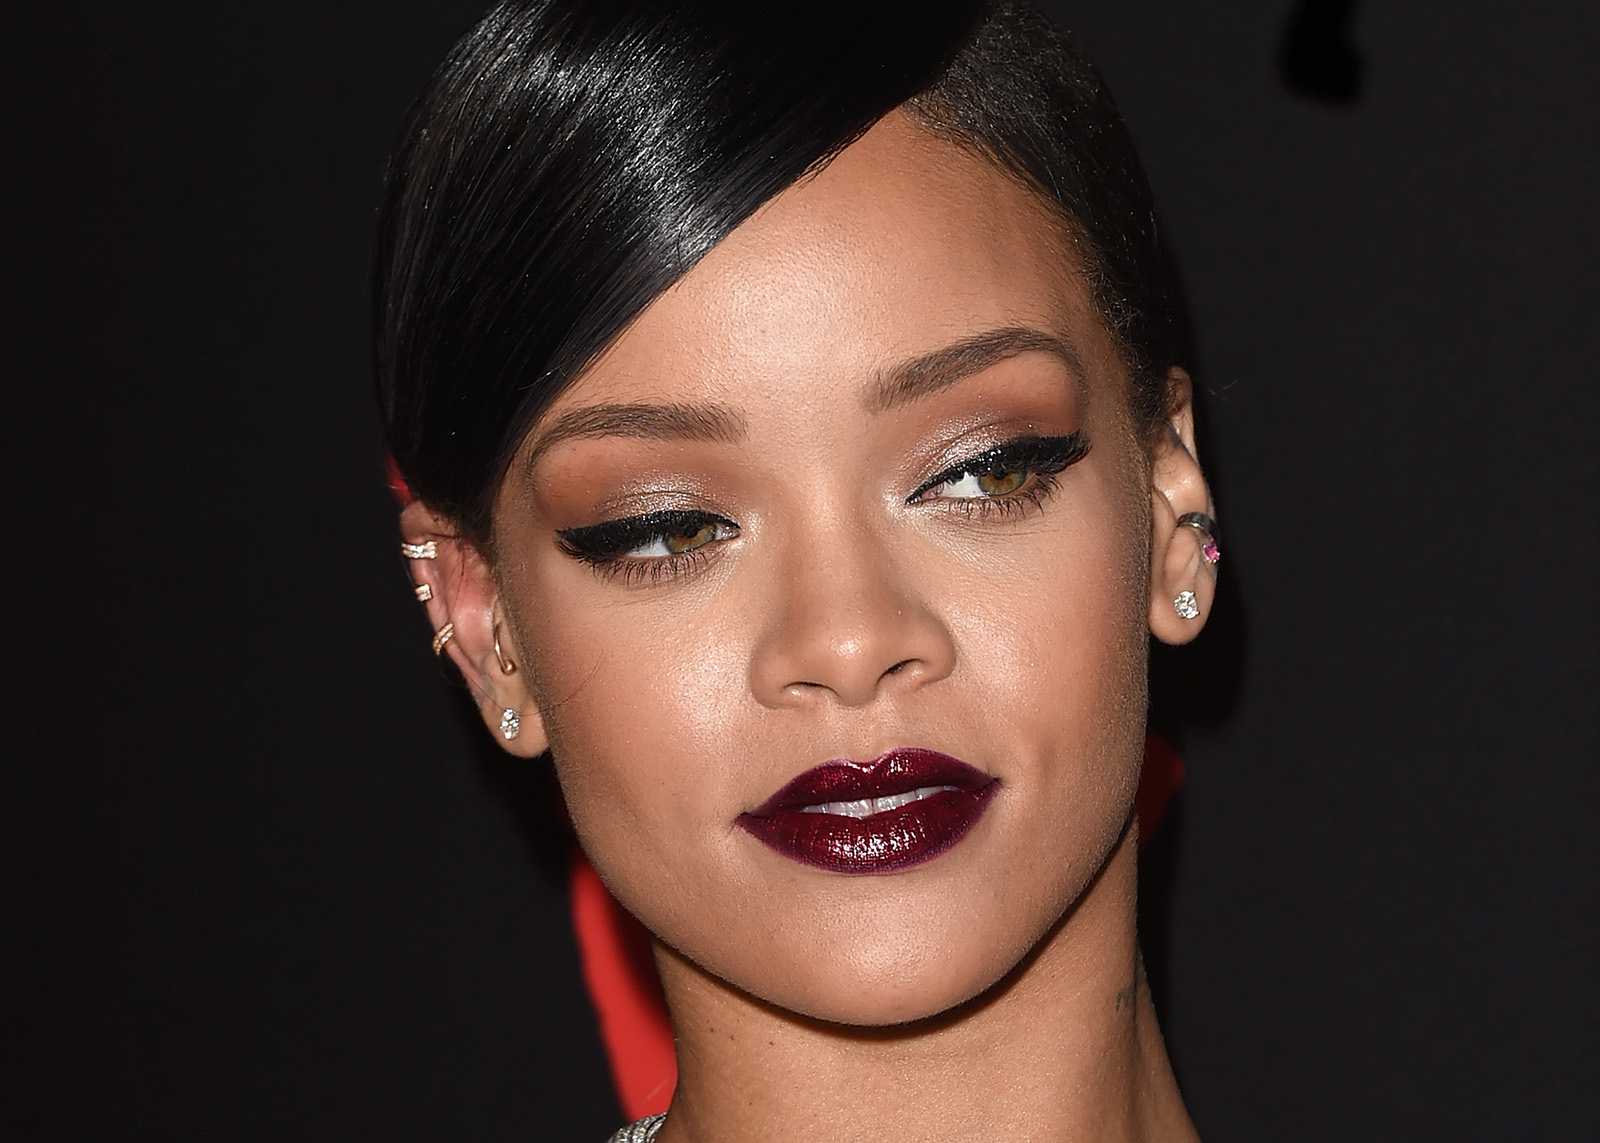 Rihanna S Most Iconic Makeup Looks Fashionisers 169 Part 2